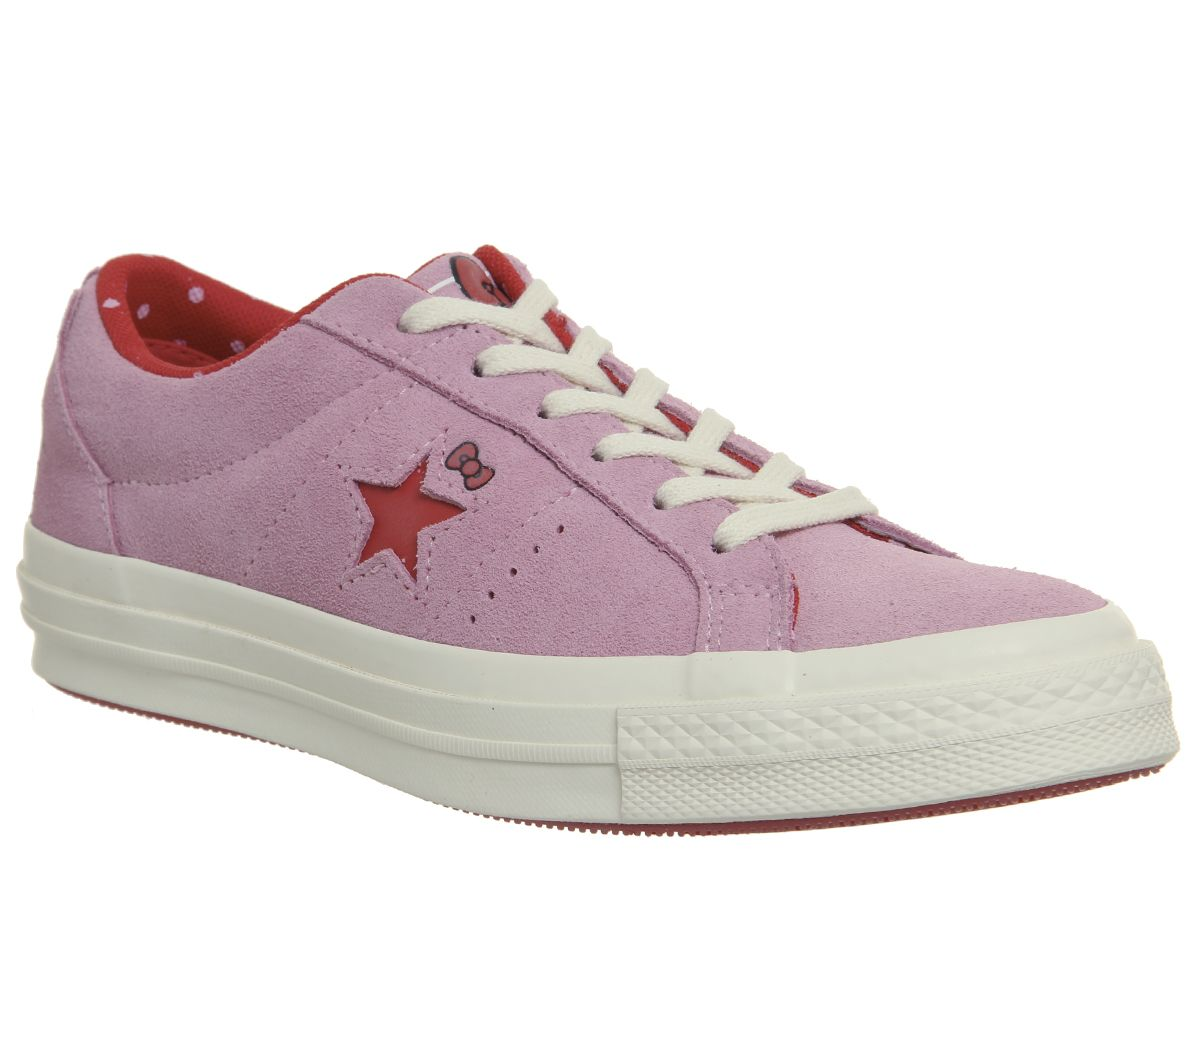 438e17d4c Converse One Star Trainers Pink Hello Kitty - Hers trainers